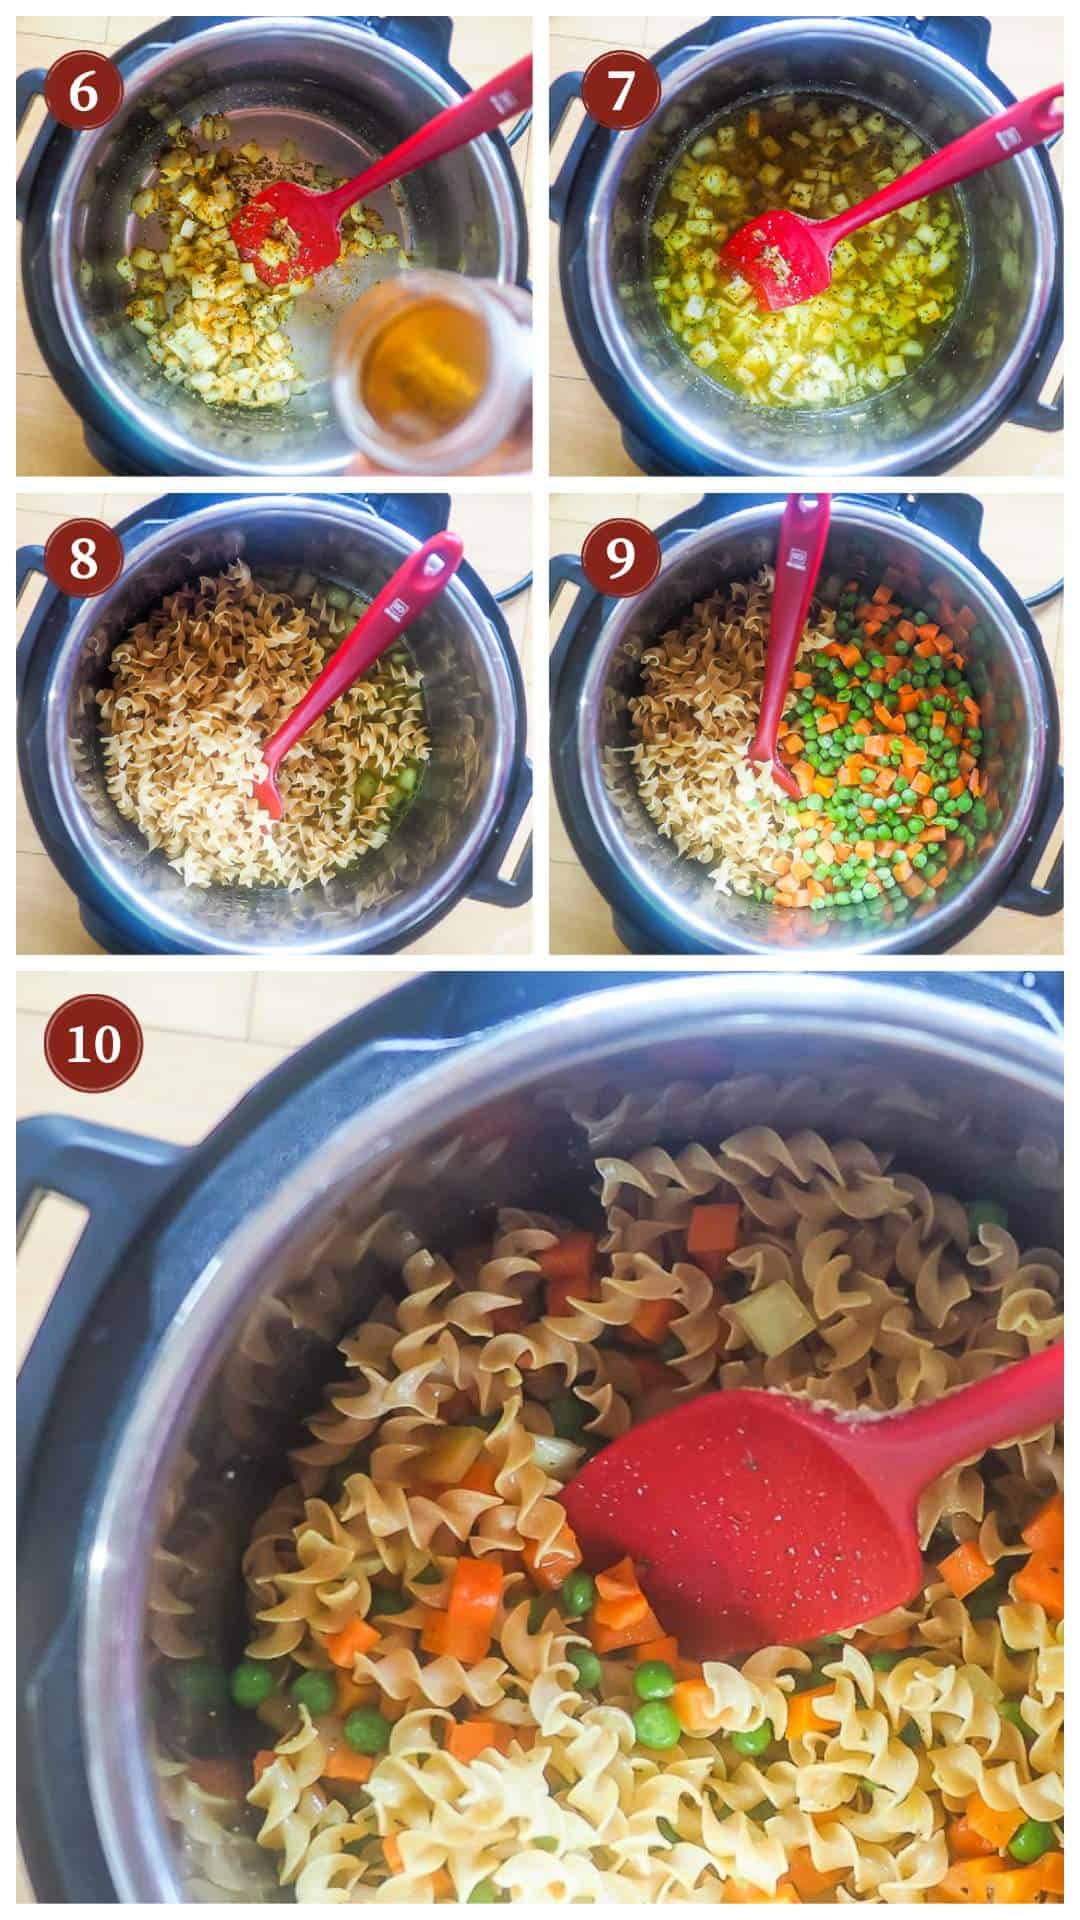 A collage of images showing the process of making instant pot chicken pot pie soup, steps 6 - 10.